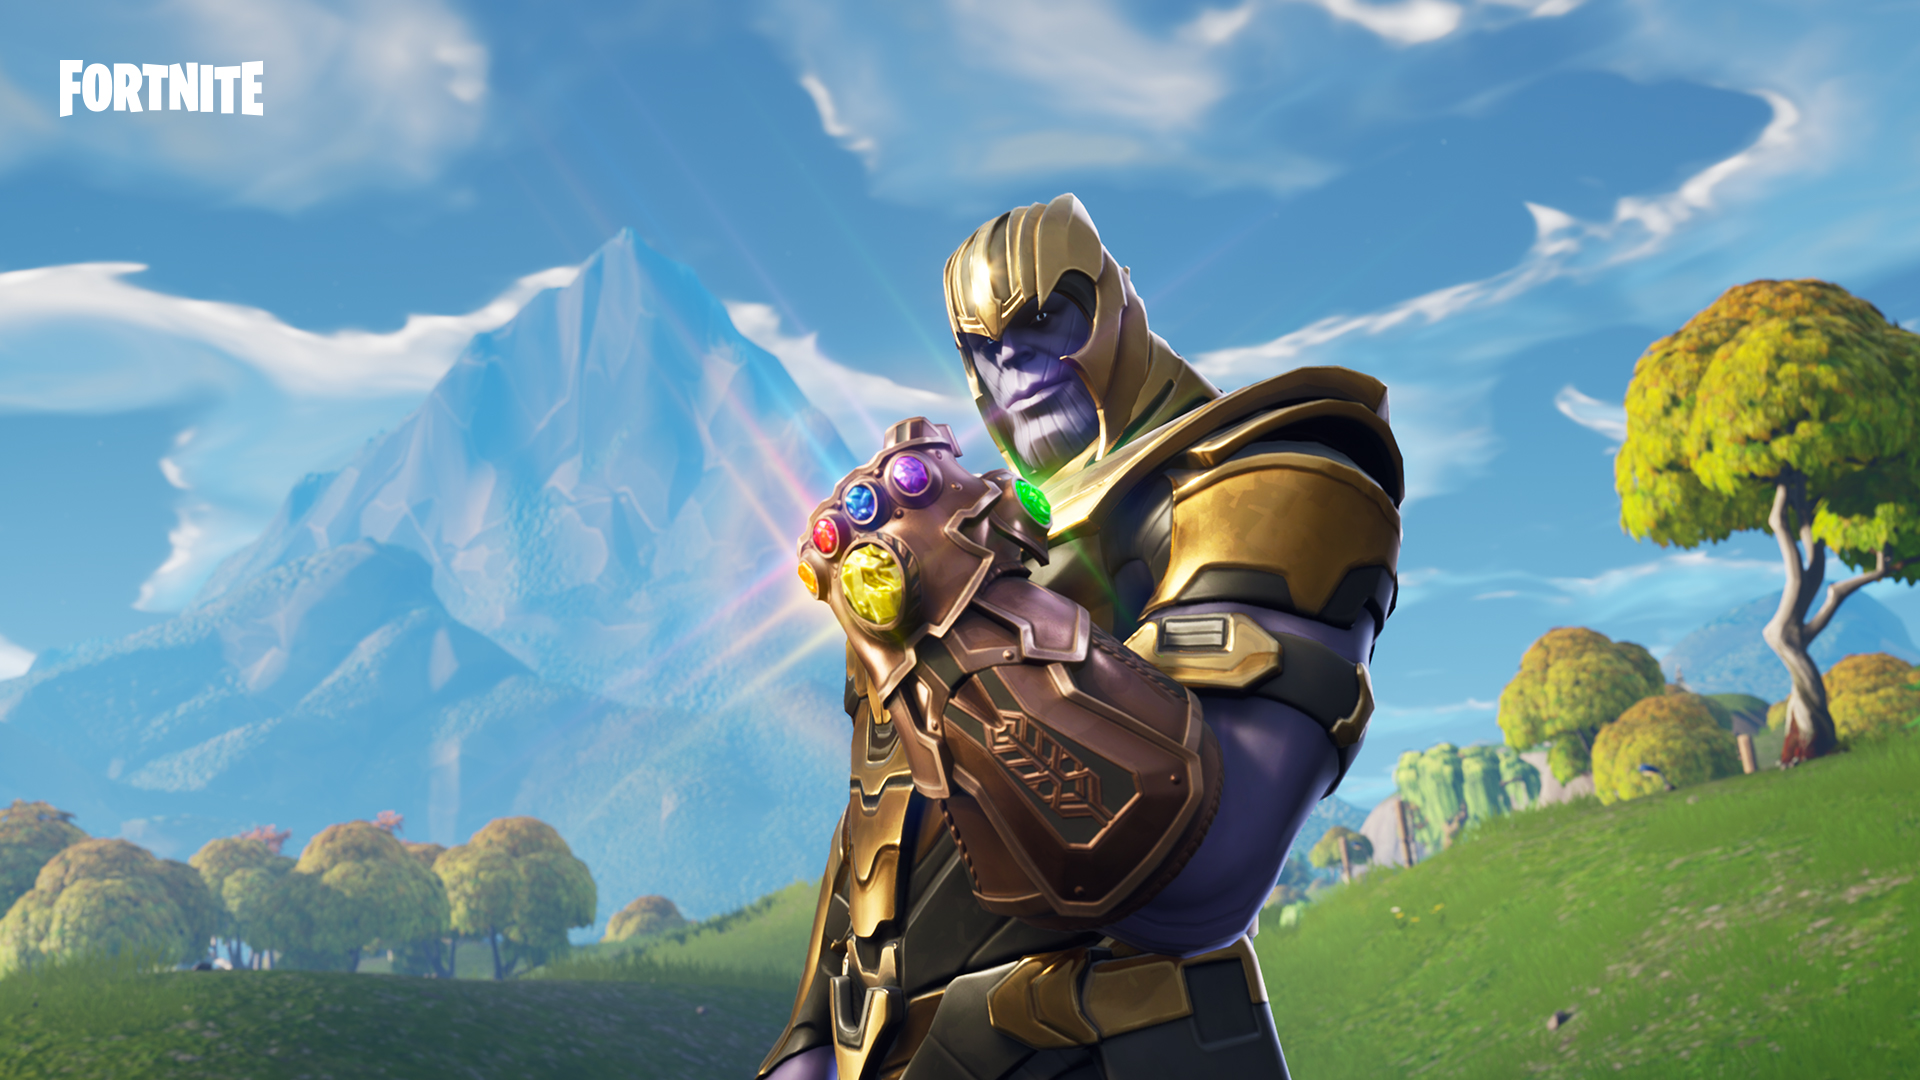 'Fortnite' Players Are Editing Dancing Thanos Into Marvel Movie Scenes